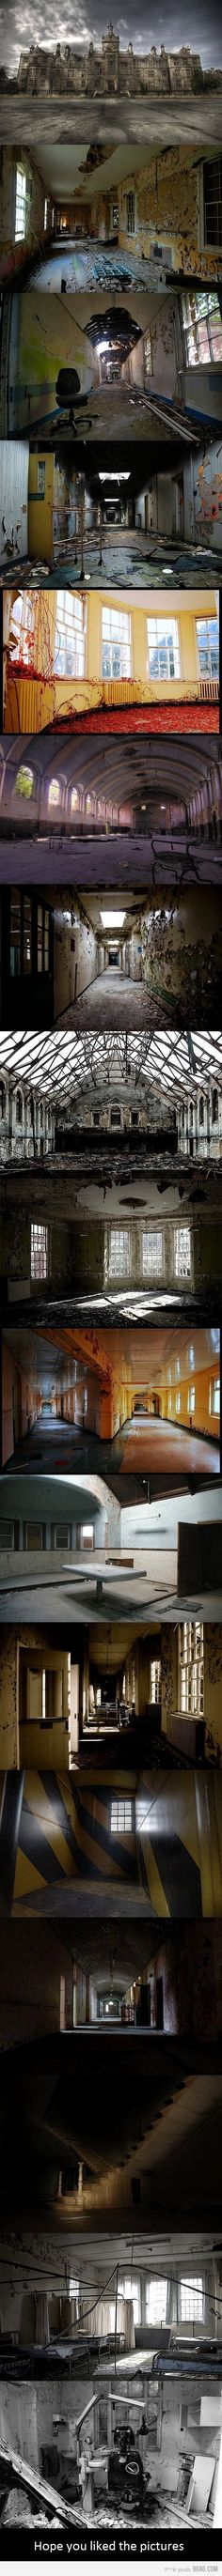 Abandoned places (AWESOME and creepy)